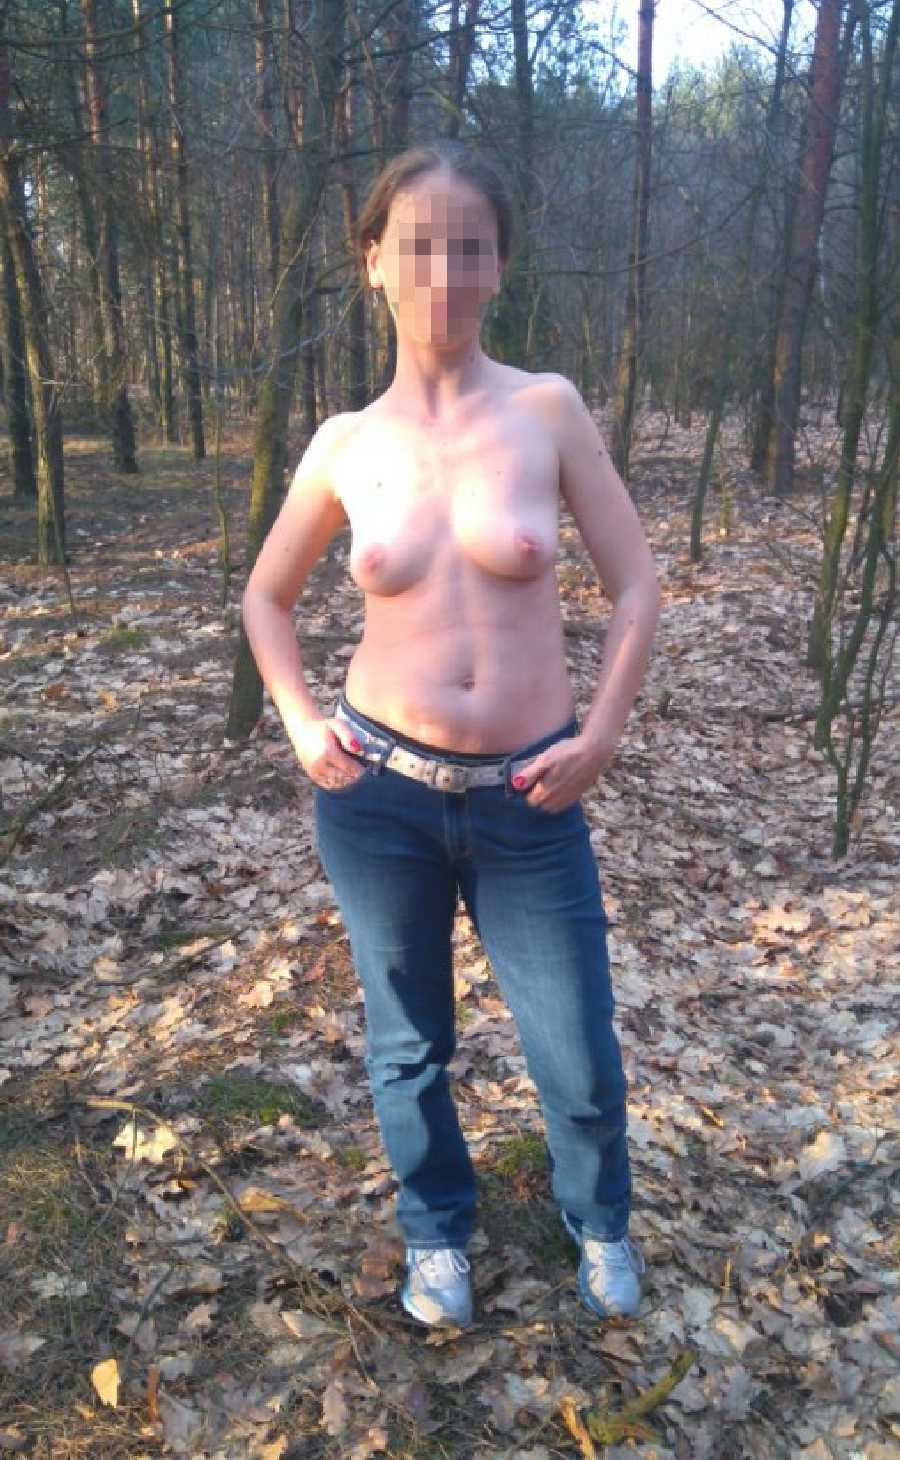 Flashing in the Forest